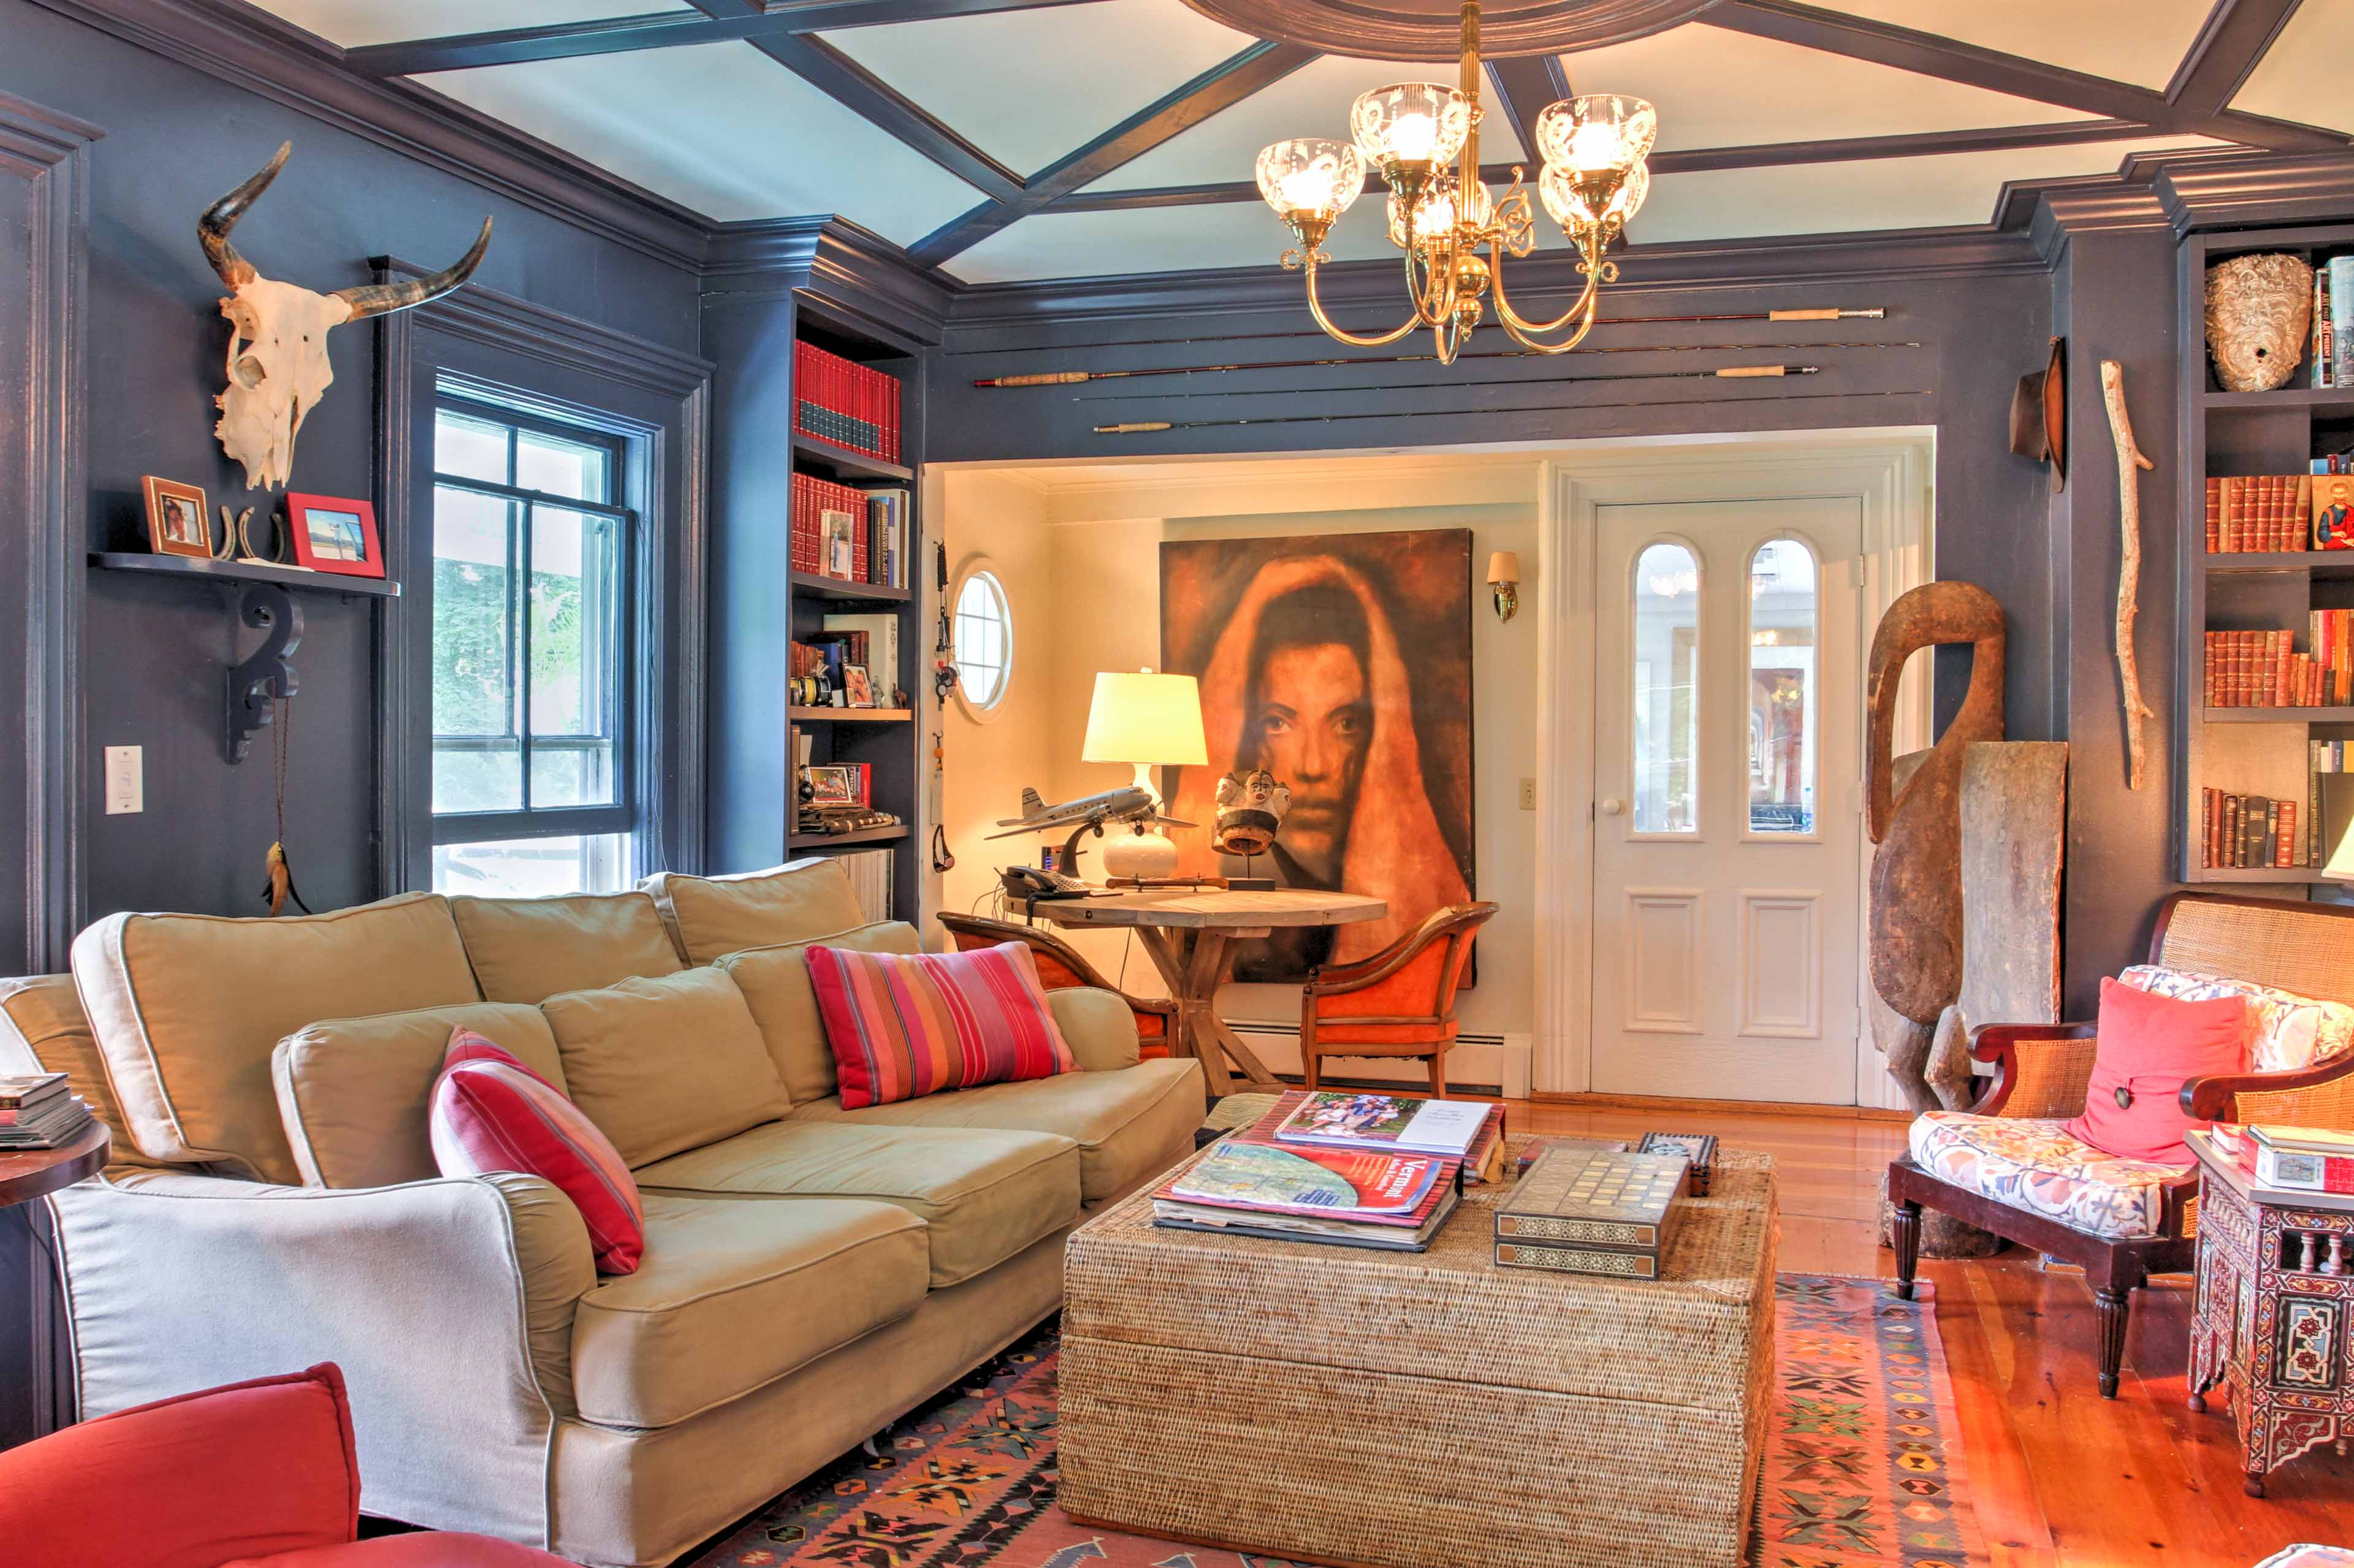 Enjoy some quiet downtime in this sitting room and lose yourself in a book.